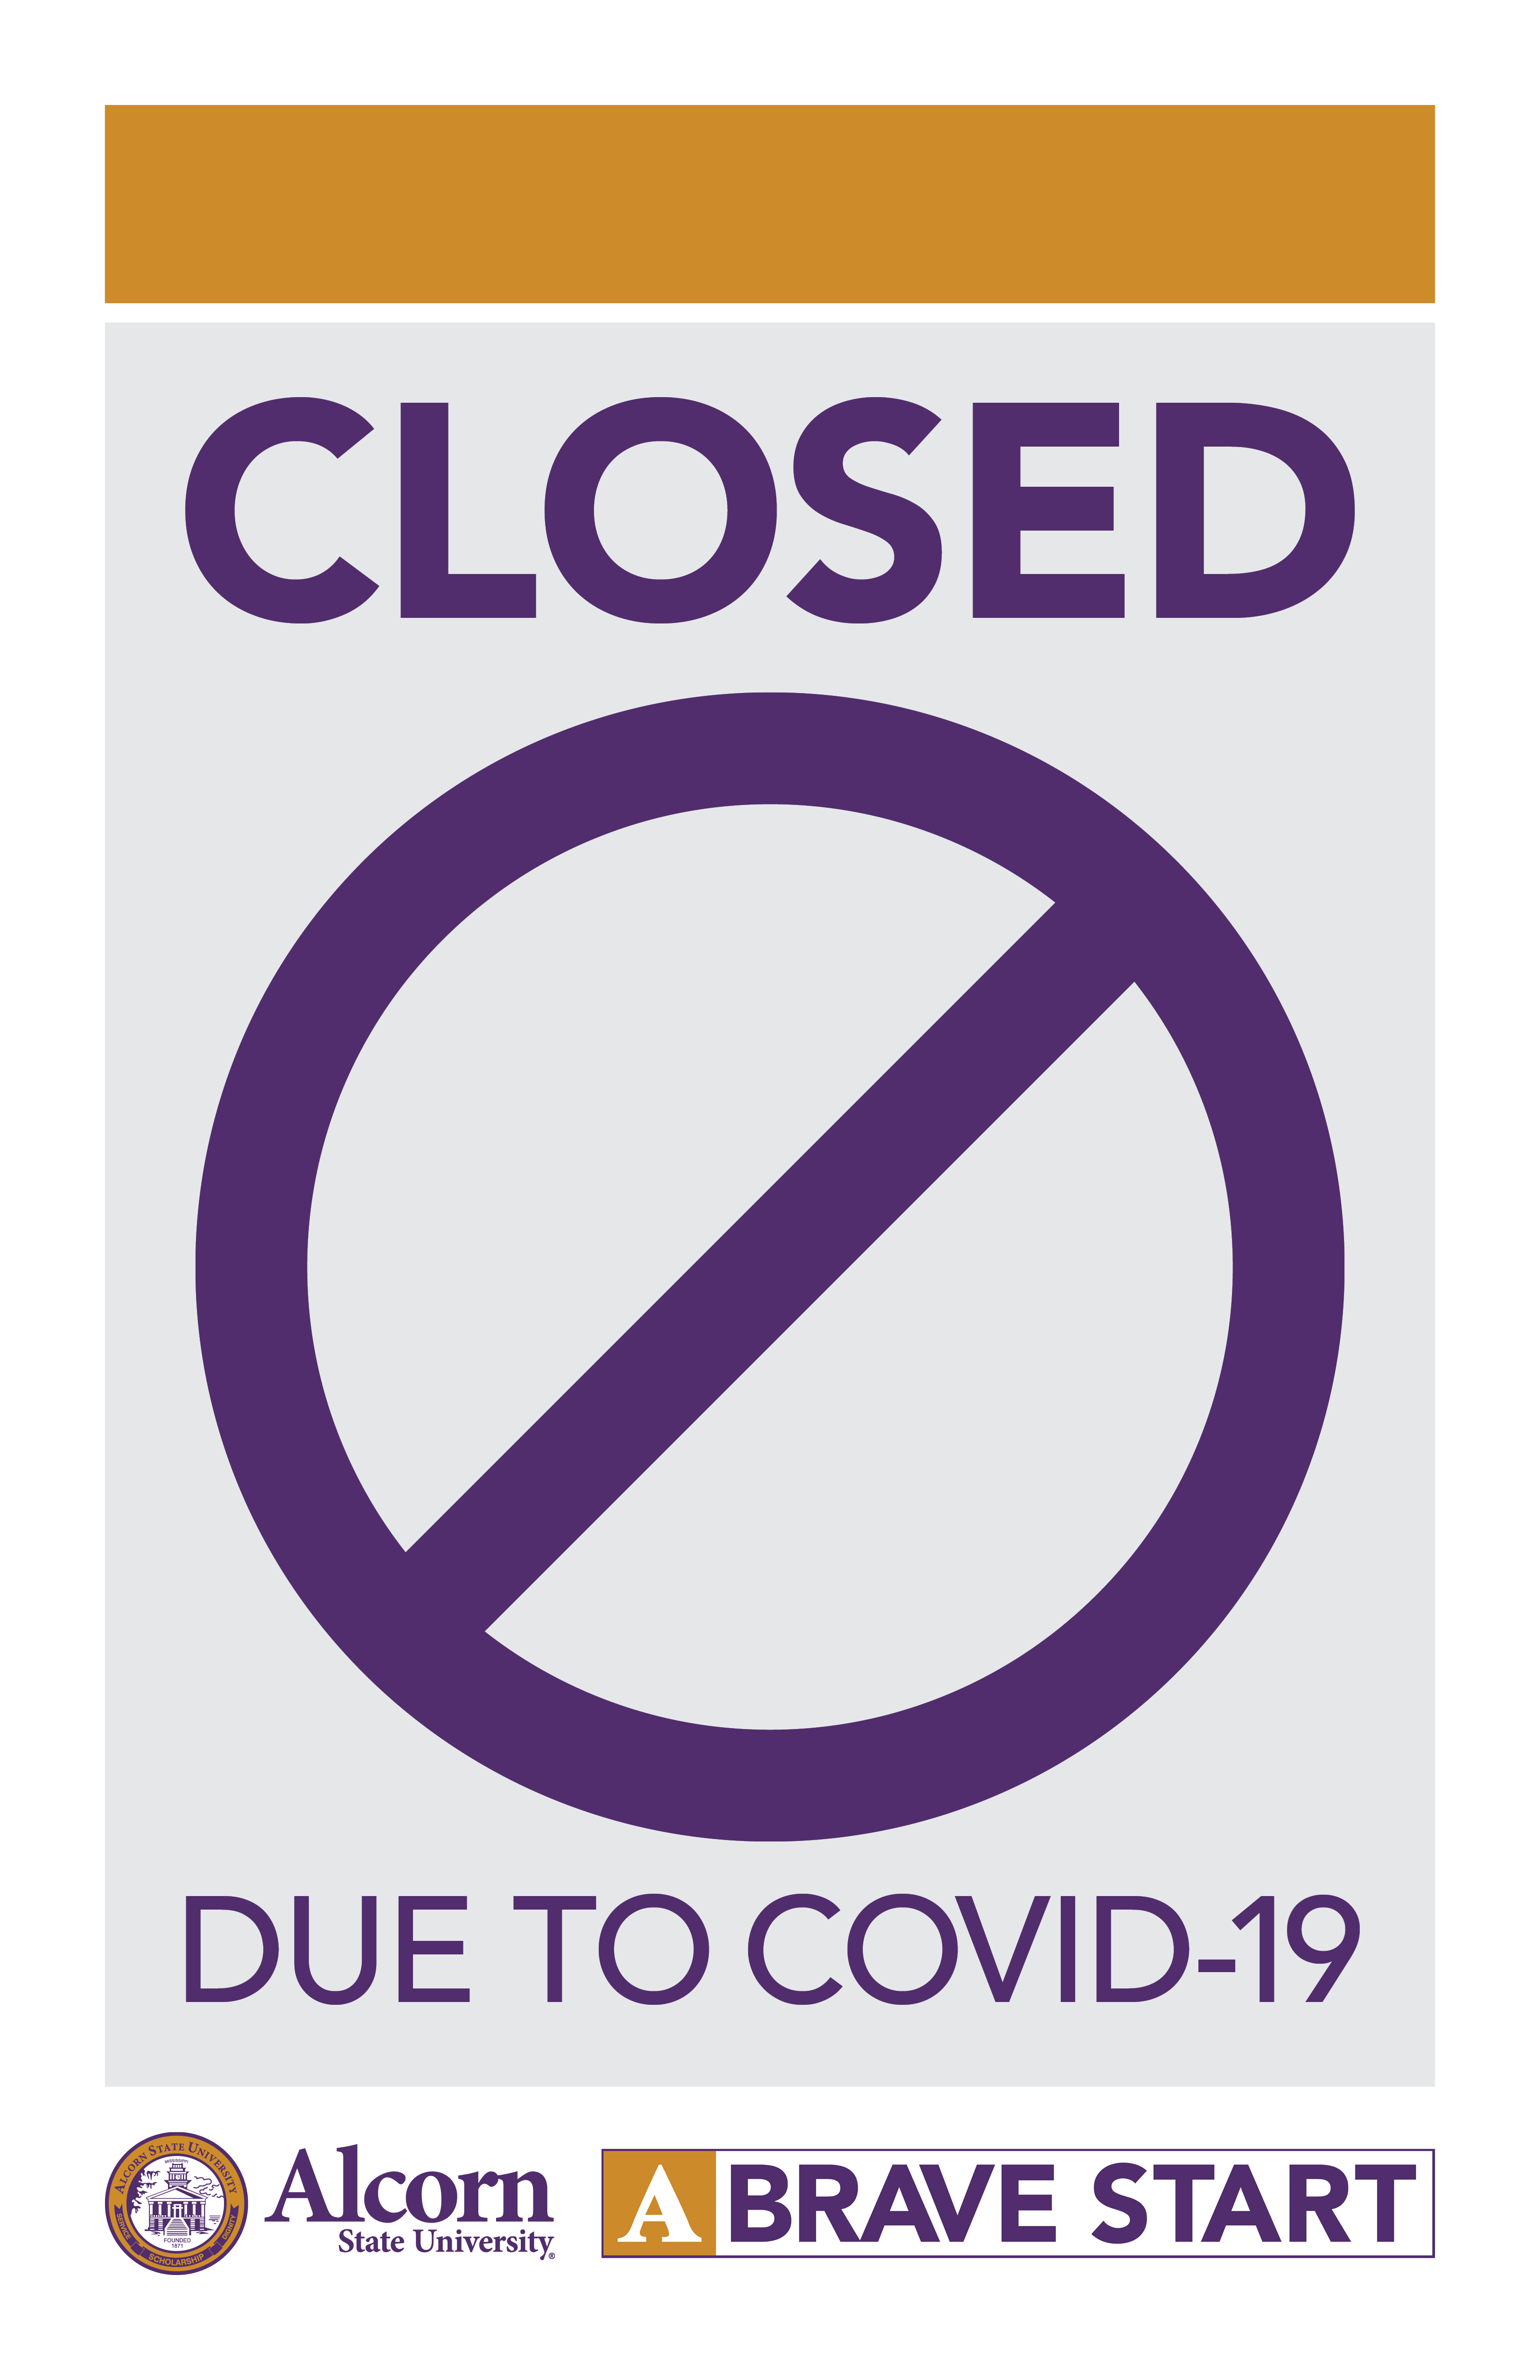 CLOSED. (Picture of a closed sign) DUE TO COVID-19 (Alcorn logo mark. A Brave Start logo mark.)